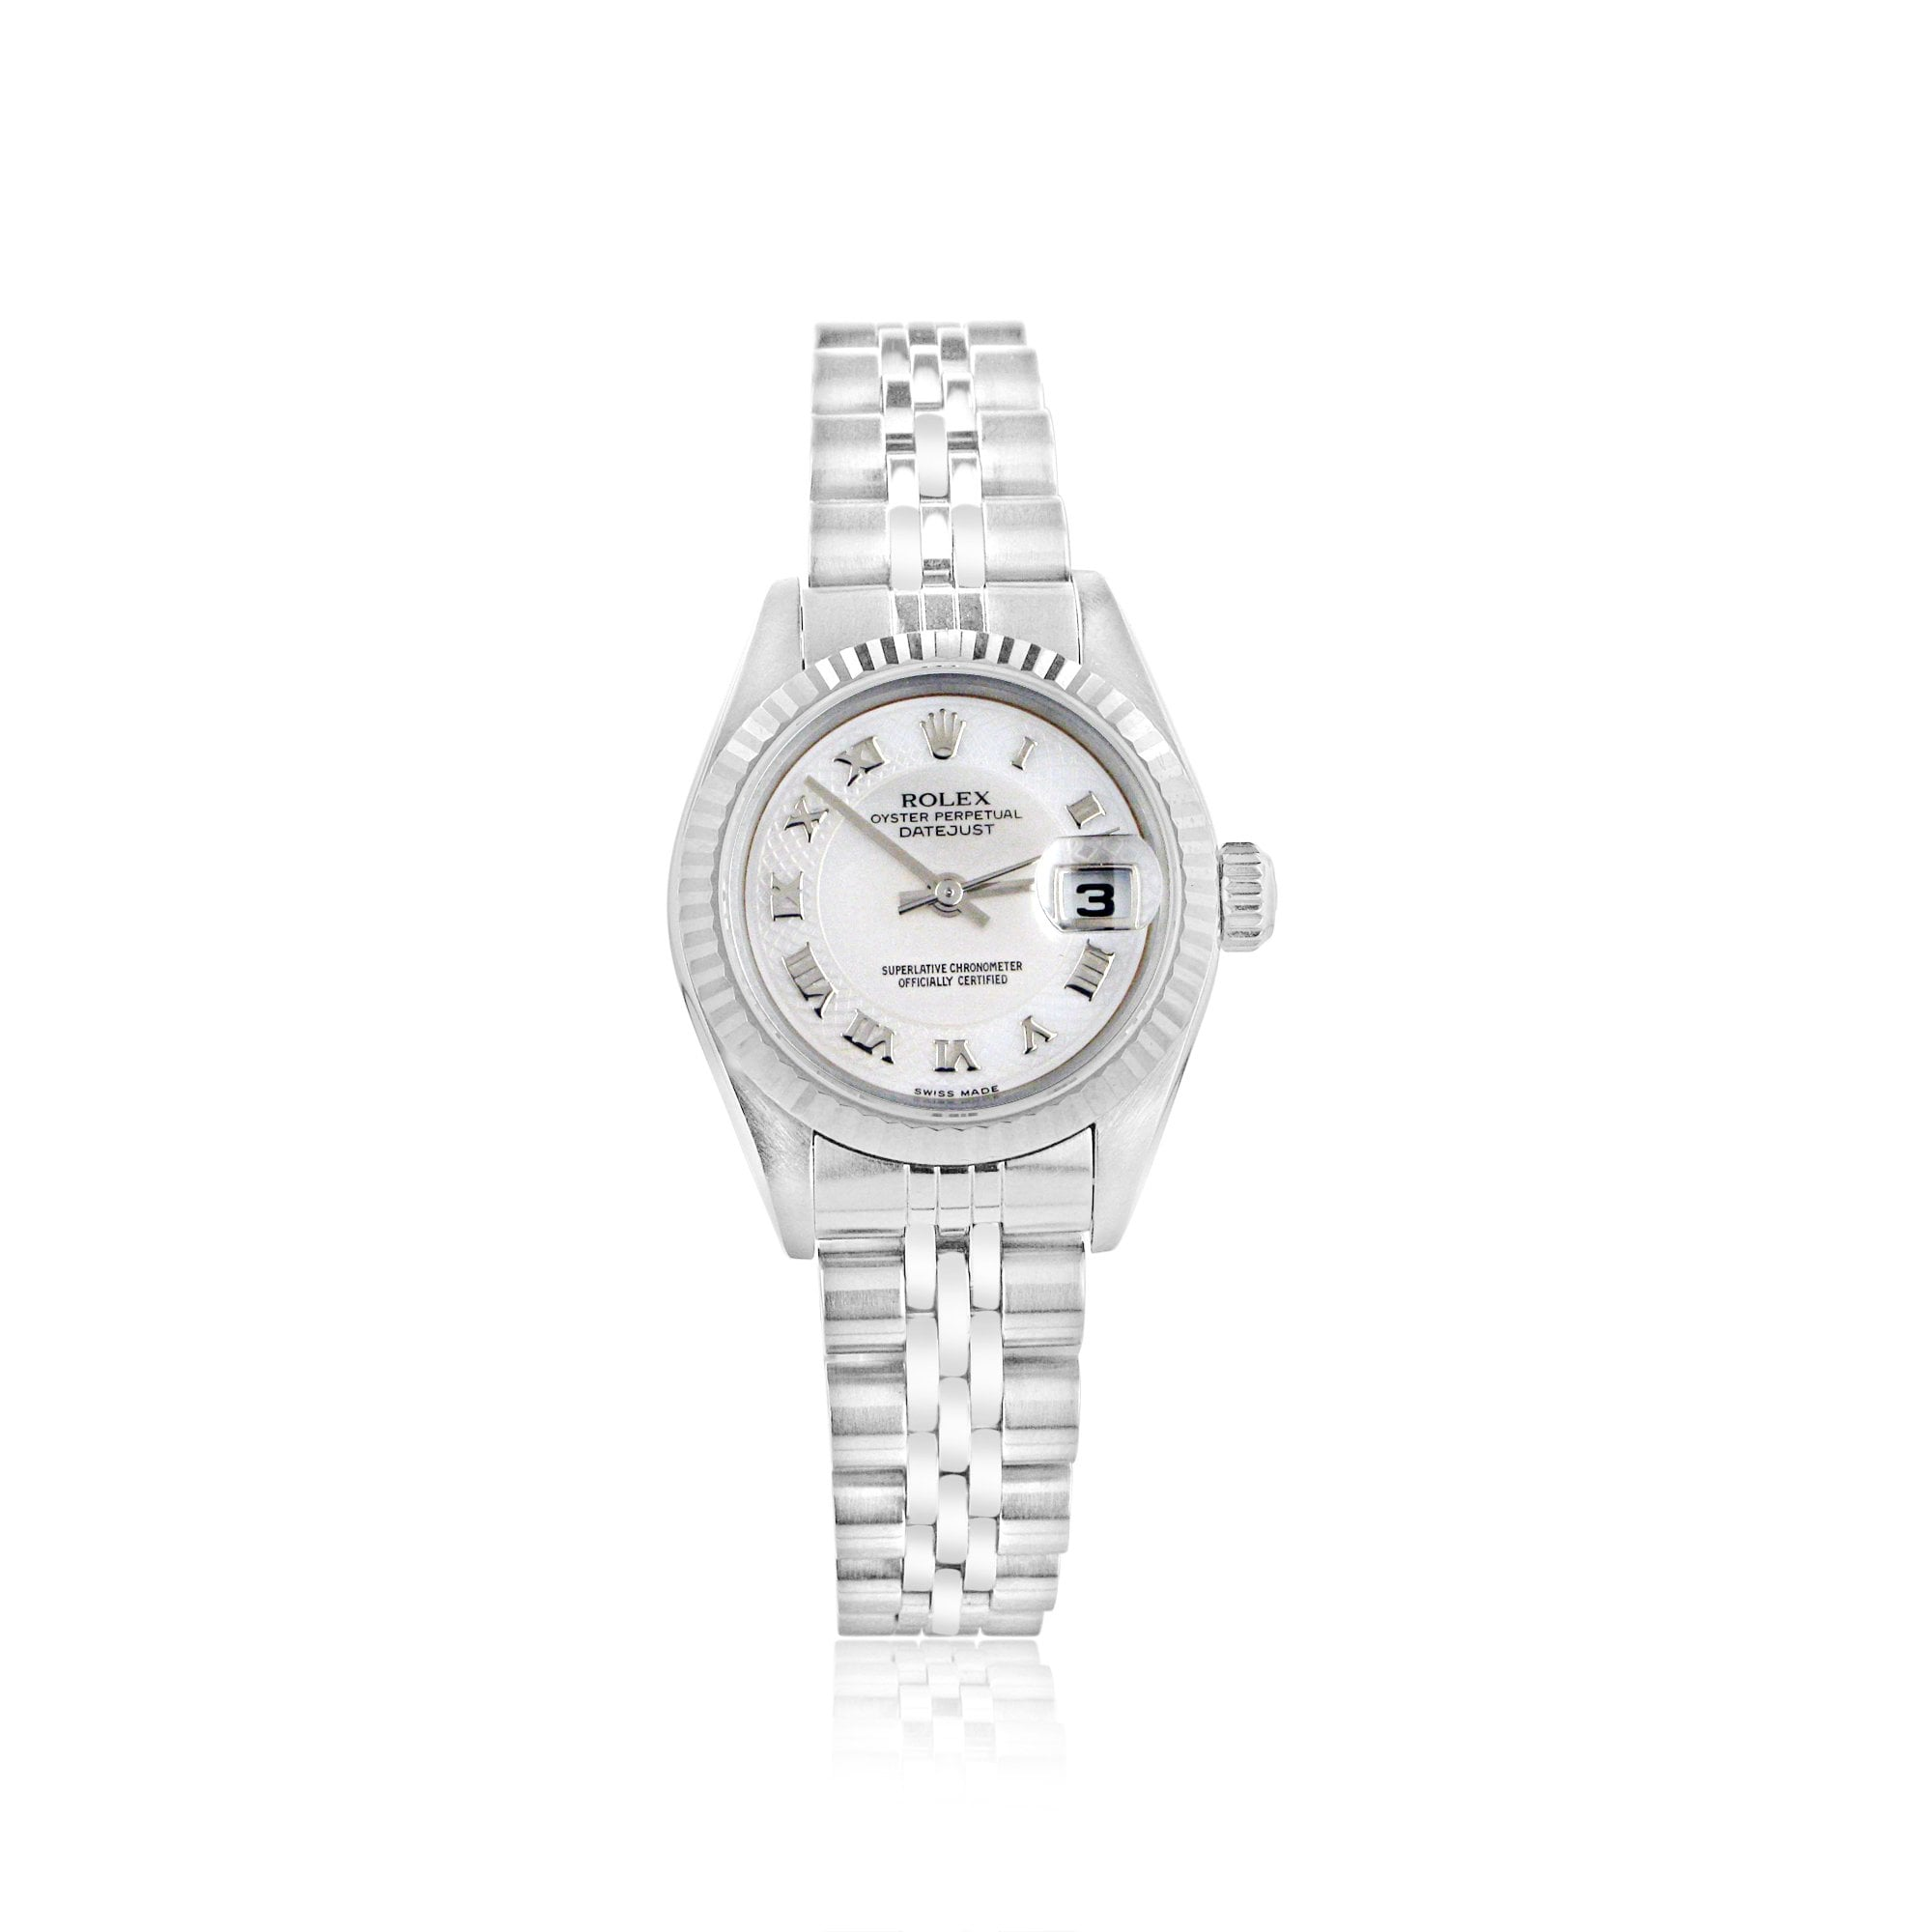 abd87e68161 Ladies Steel & 18ct White Gold Rolex Datejust With Mother of Pearl  Detailed Dial 79174